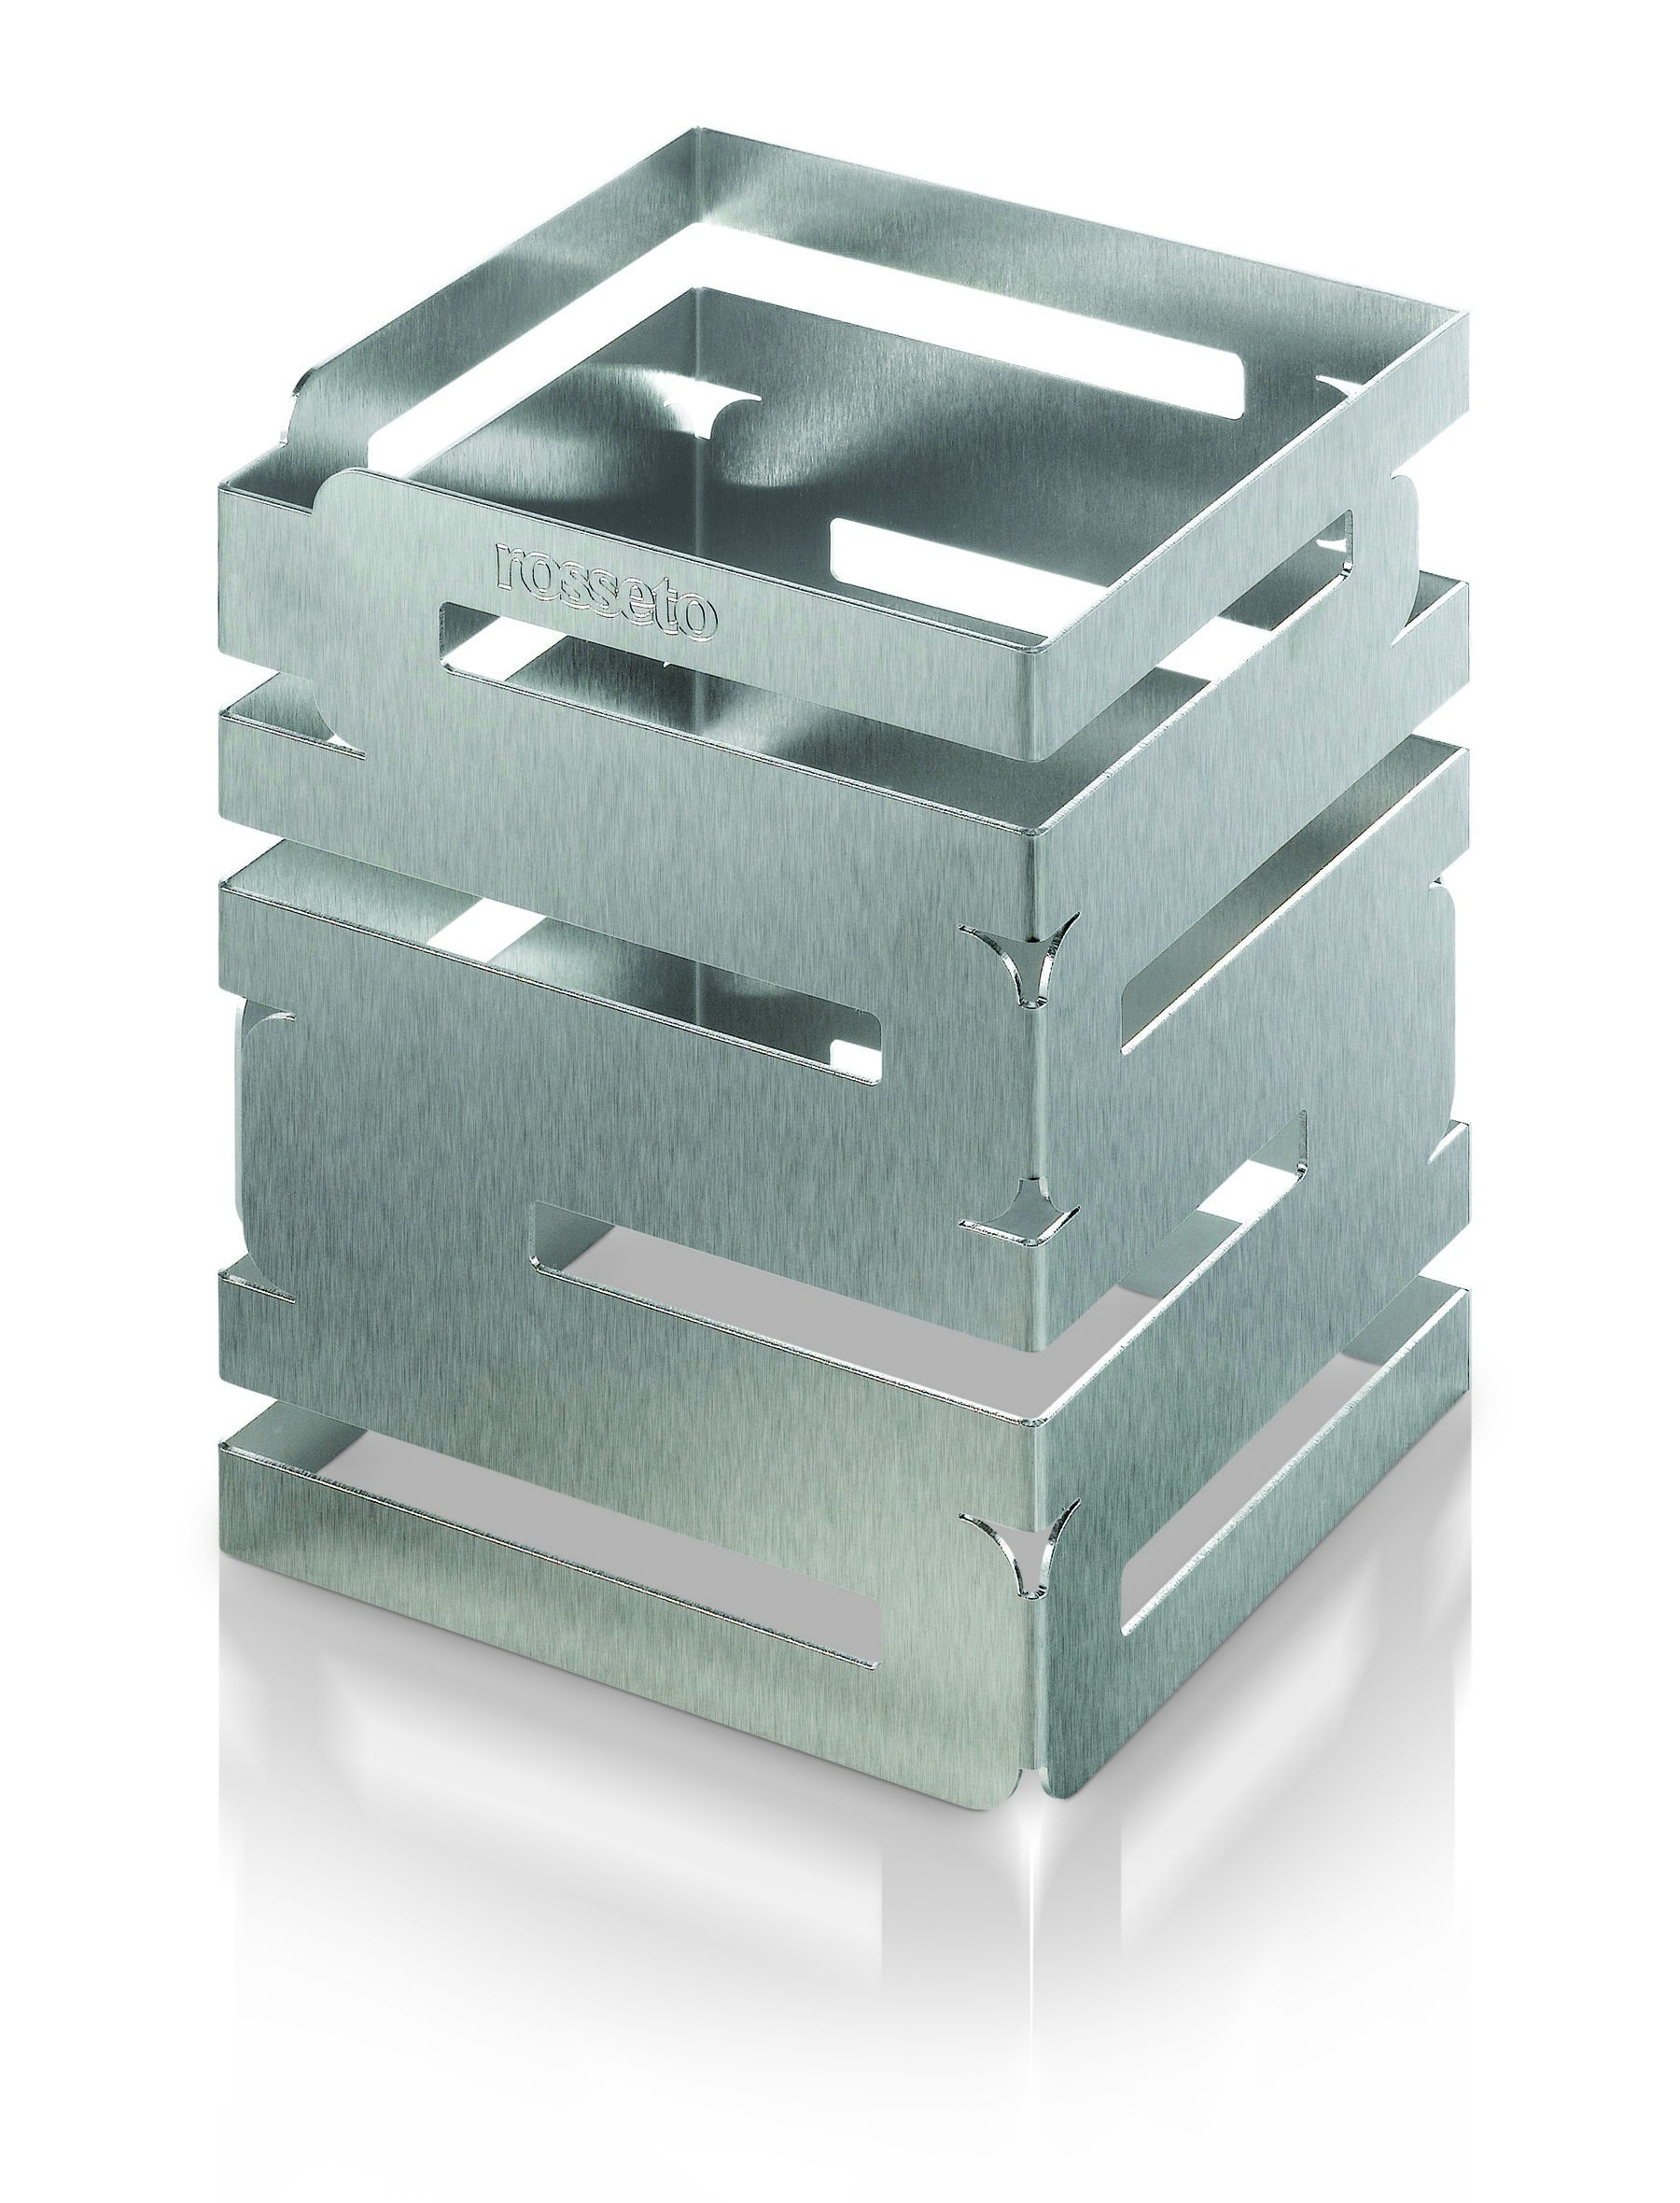 "Rosseto D62377 Skycap Stainless Steel Brushed Finish Square Multi-Level Riser 6"" x 6"" x 8""H"